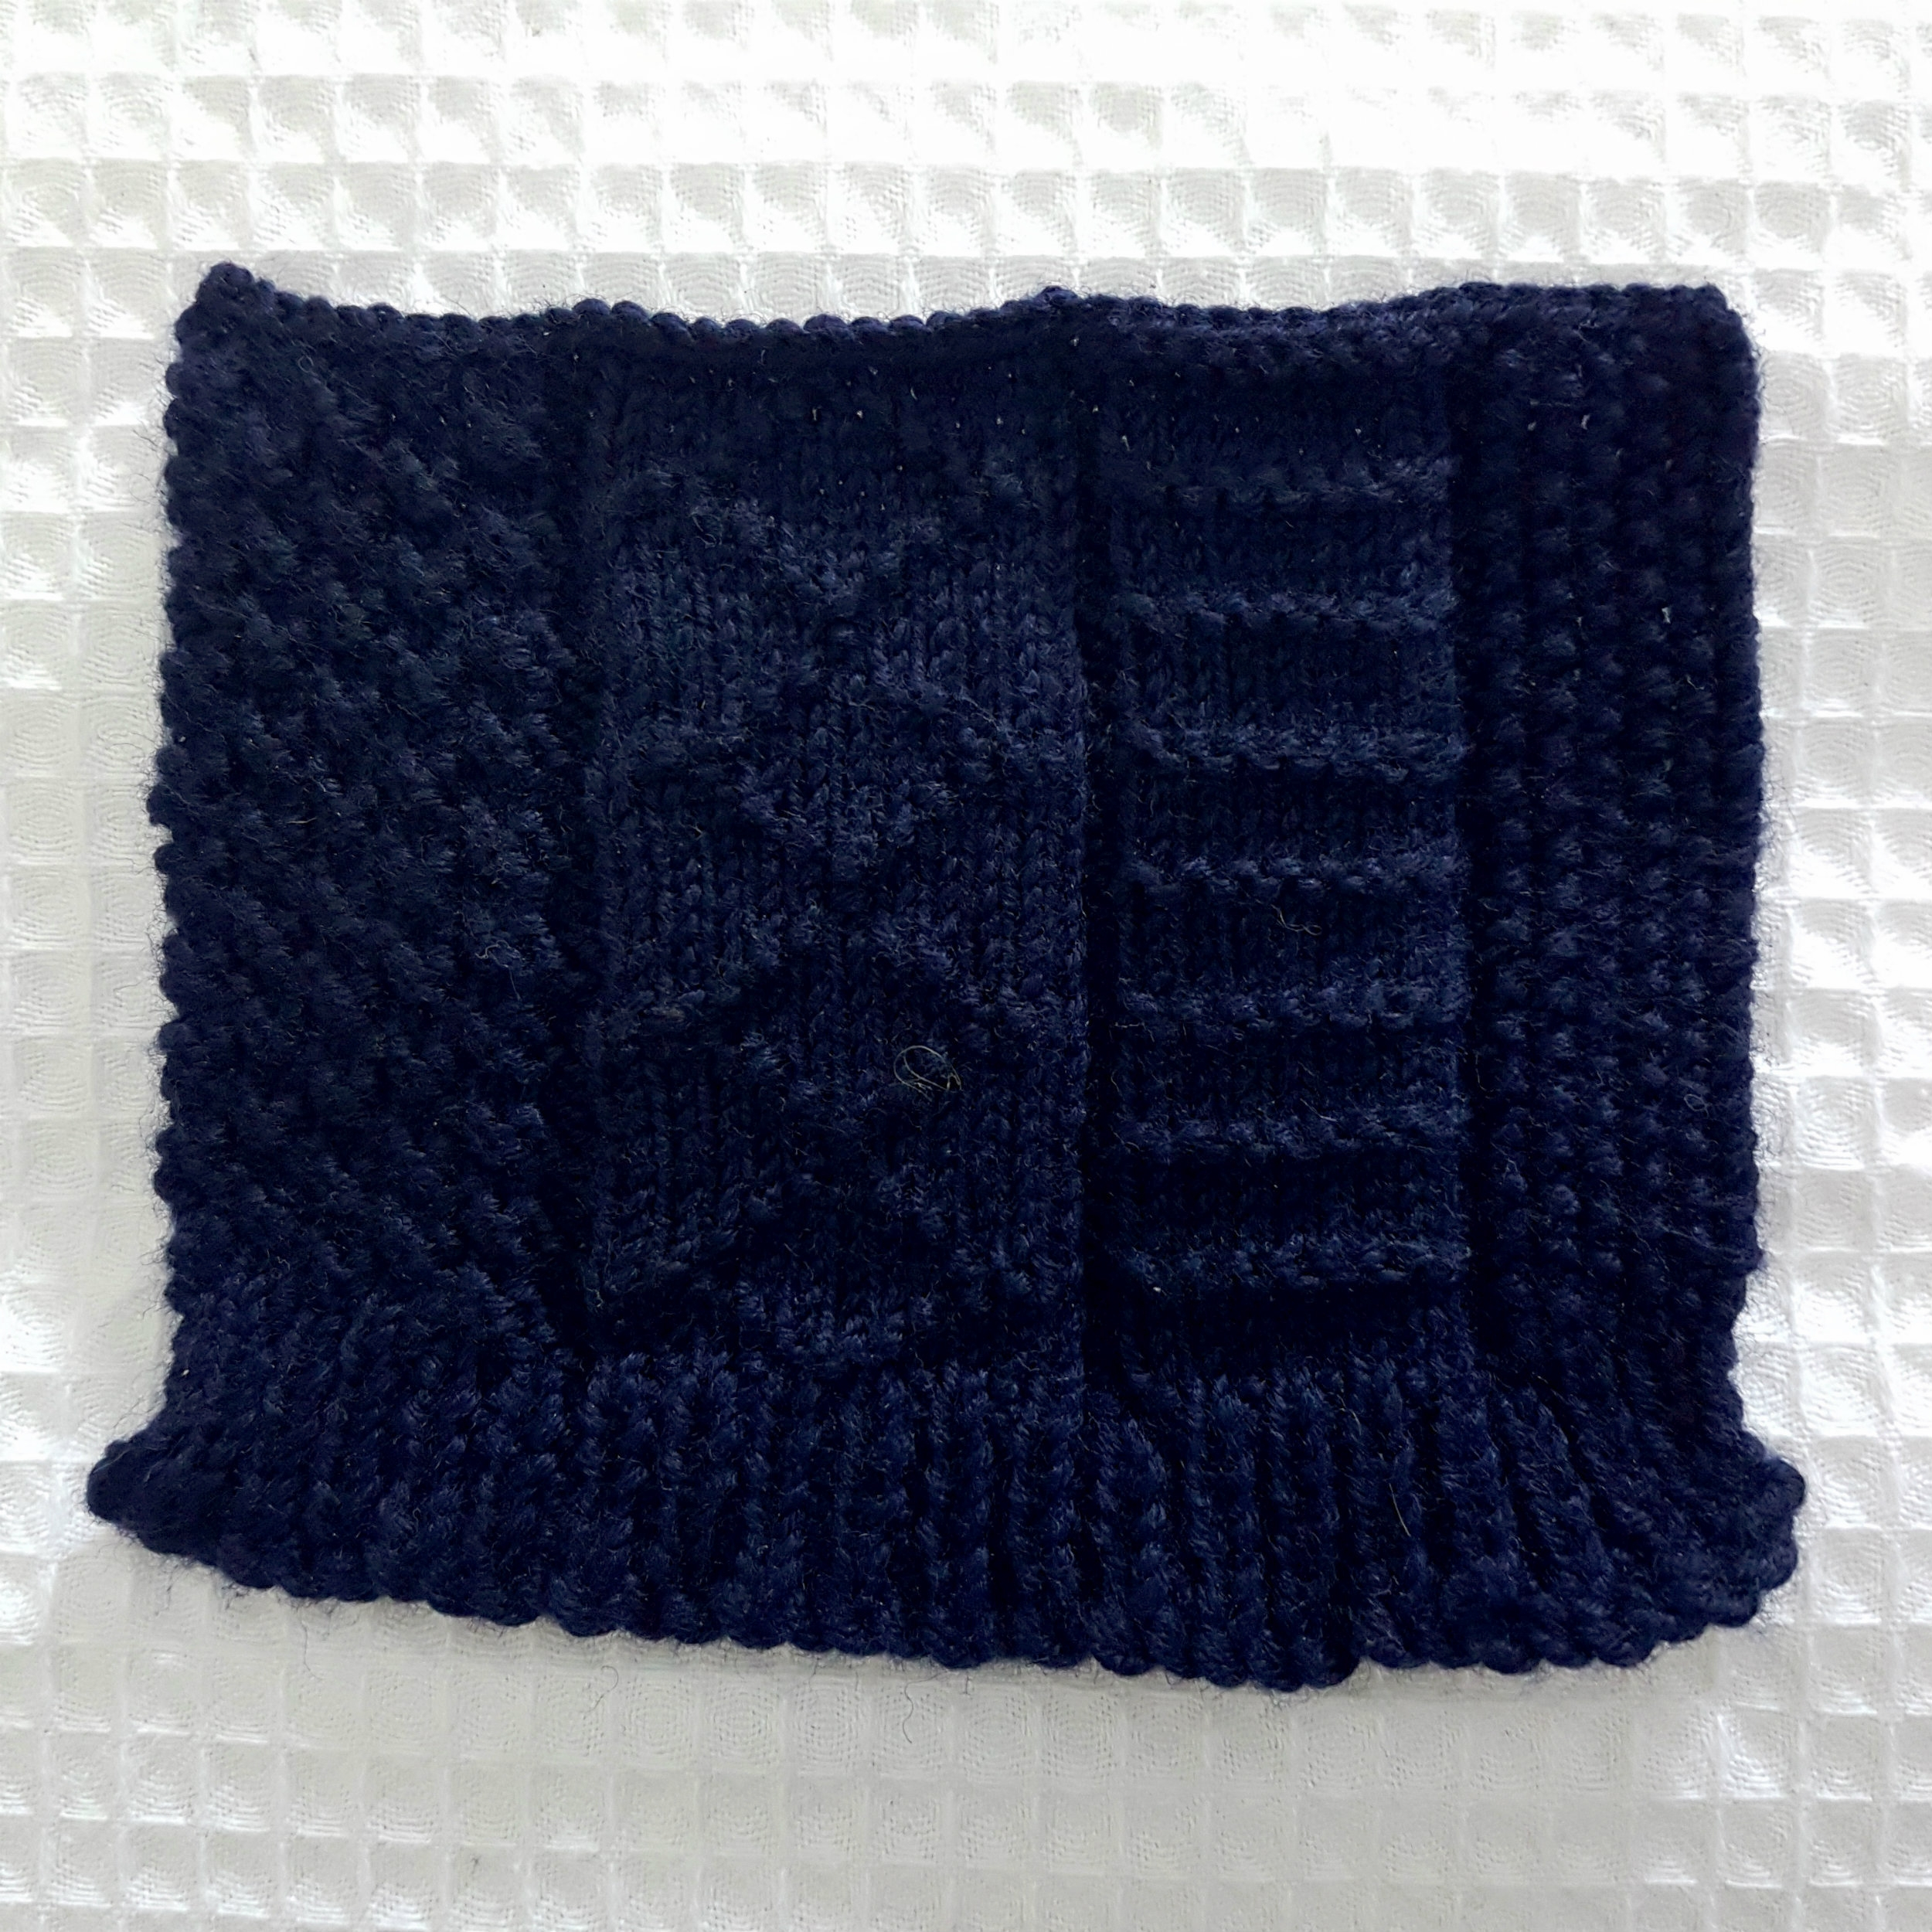 """My first attempt at a traditional Gansey stitch layout. I tried the """"double wool"""" cast on, but find the way that it spreads unsightly. I think I need a bit of practice to get the balance right on the panelling too! Here, I used: double moss stitch, diamonds, ladder stitch and moss stitch."""